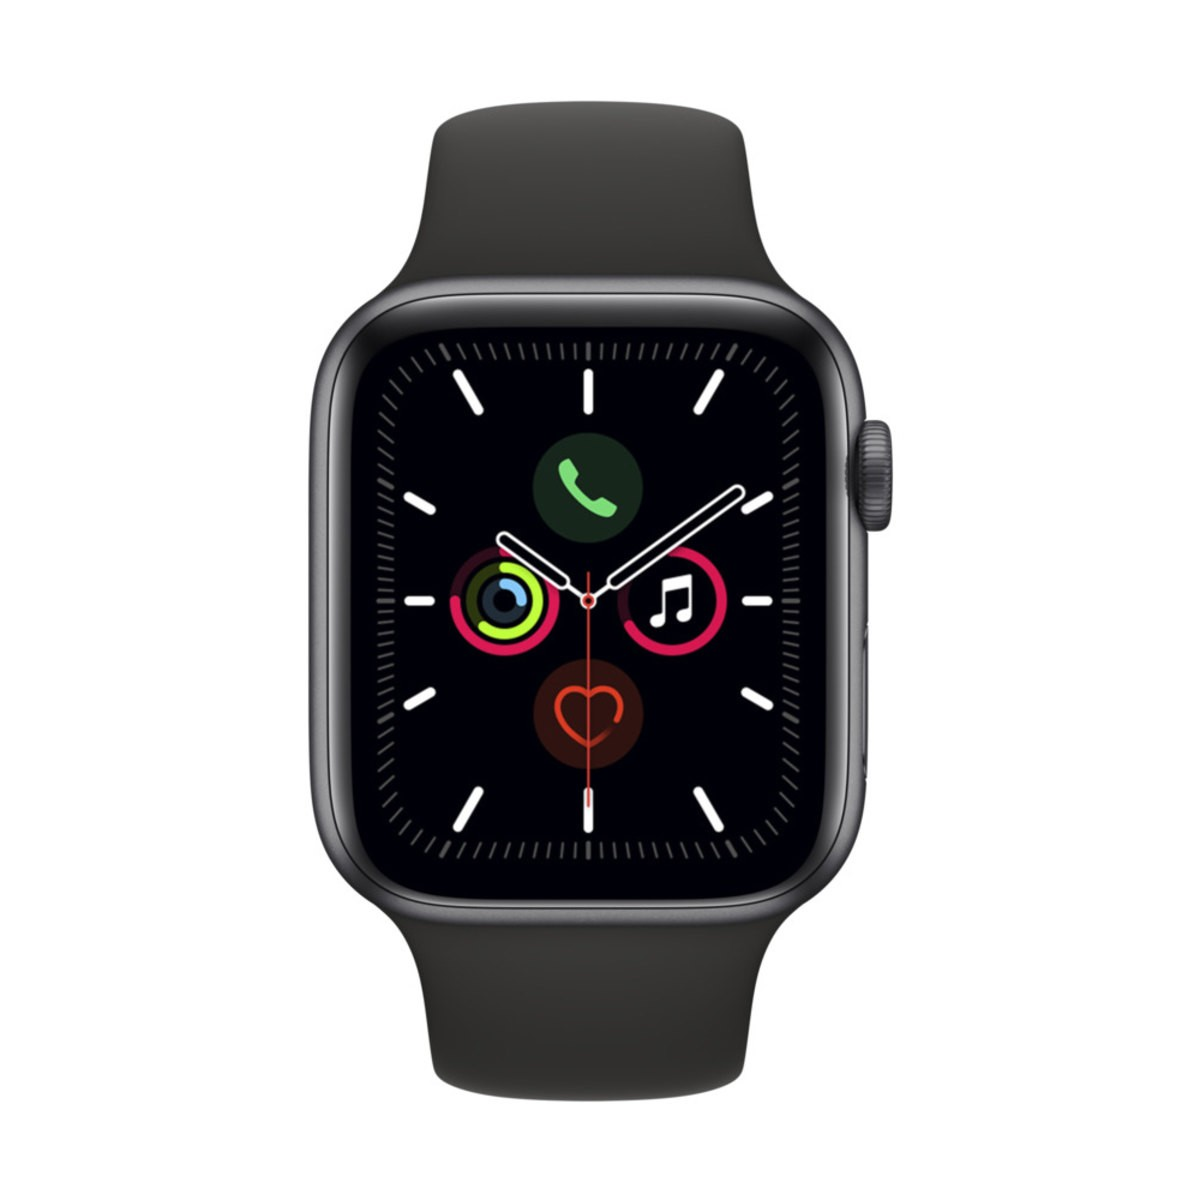 Relógio esportivo Apple Watch Series 5 com GPS + Celular  44mm - Usado